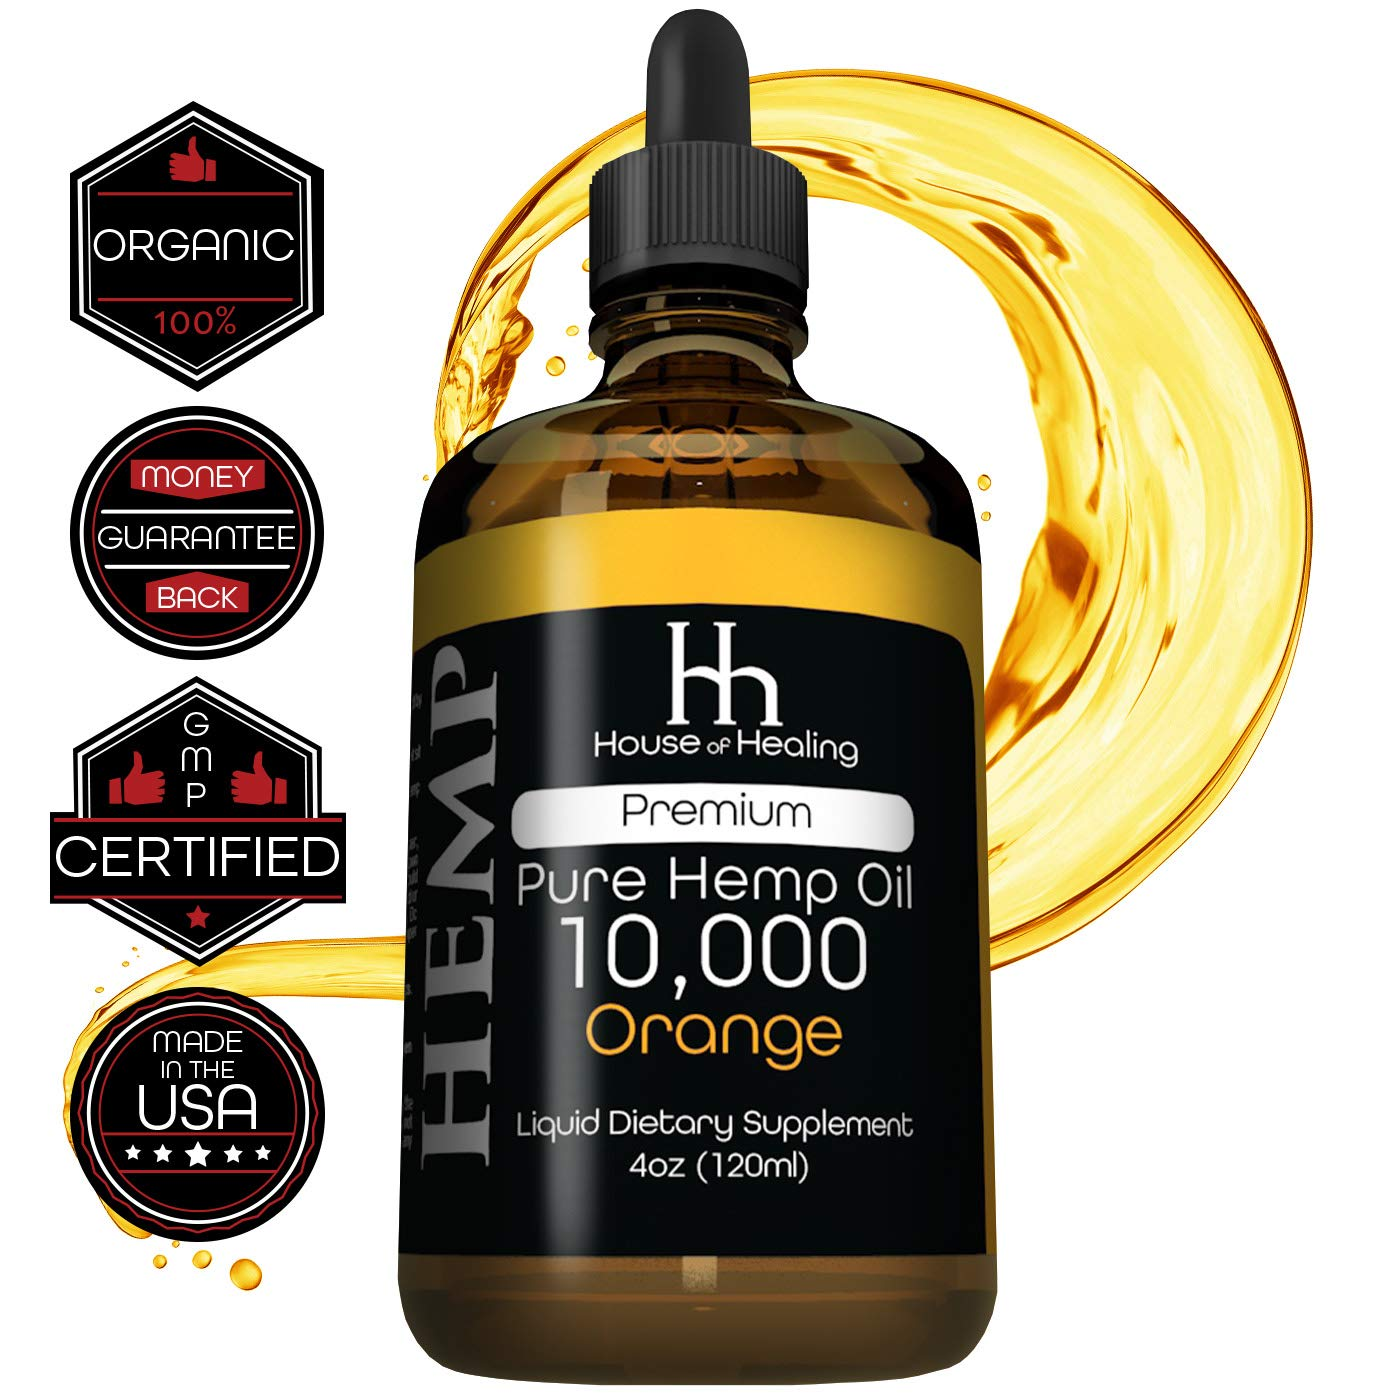 Hemp Oil for Pain Anxiety Relief :: Hemp 10,000 :: Hemp Seed Full Spectrum Extract :: May Help with Inflammation, Joints, Mood, Sleep & More! :: Zero THC CBD Cannabidiol :: Rich in Omega 3,6,9